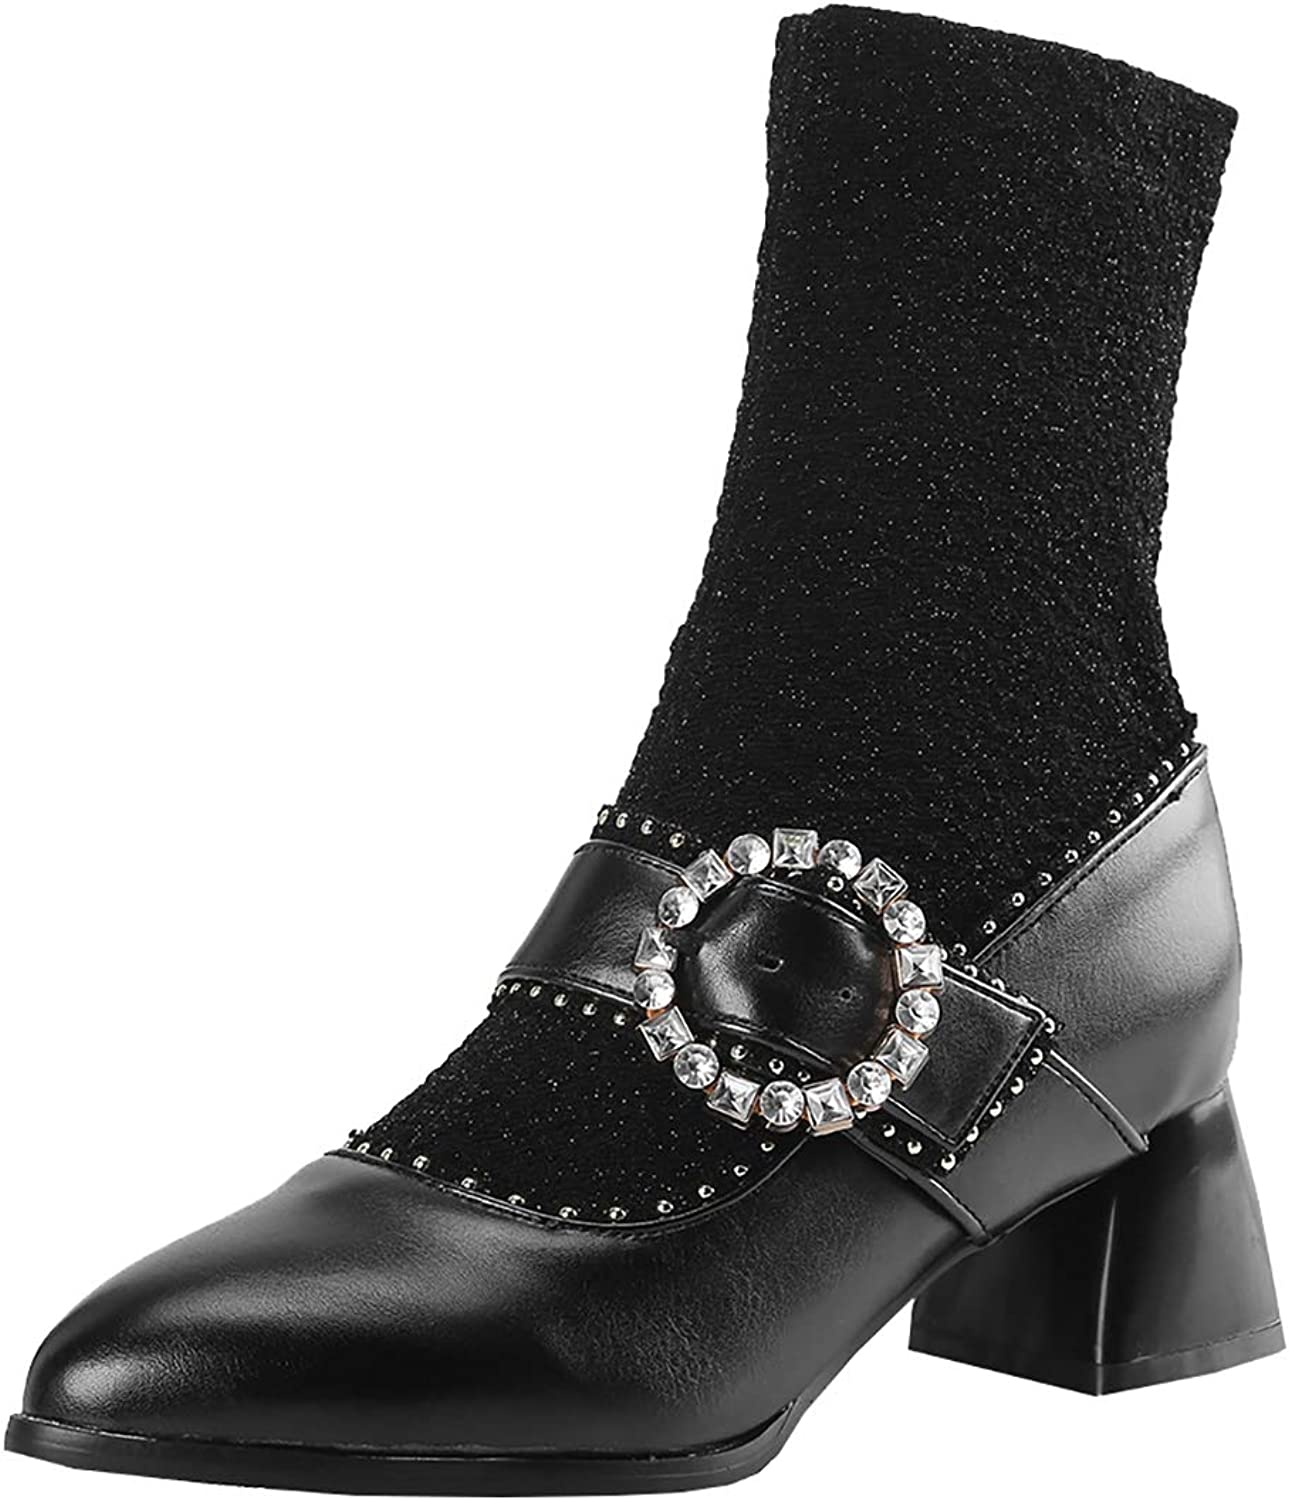 Artfaerie Womens Mary Jane Ankle Boots Block Heel Stretch Boot Lolita Booties with Buckle